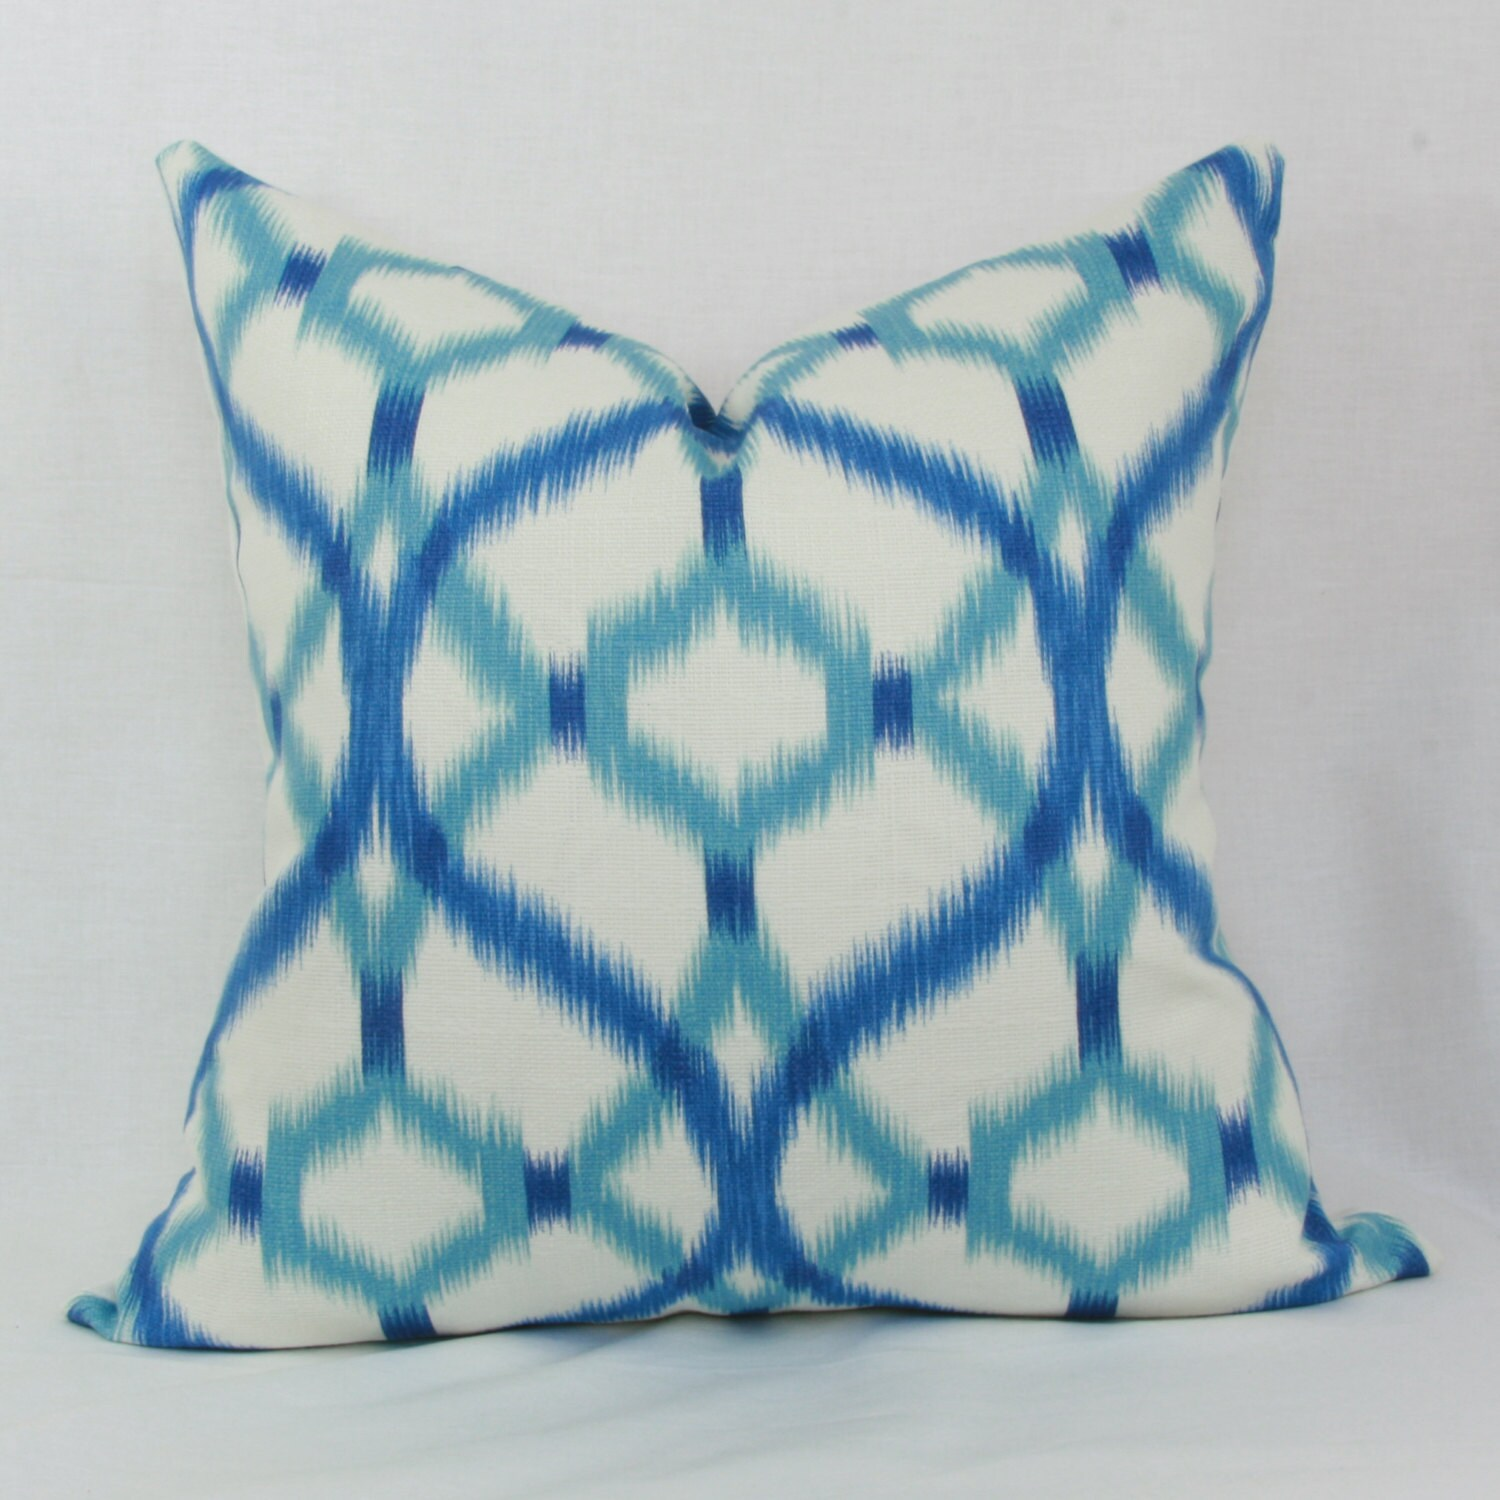 Throw Pillows Aqua Blue : Blue & aqua ikat decorative throw pillow cover 18x18 20x20